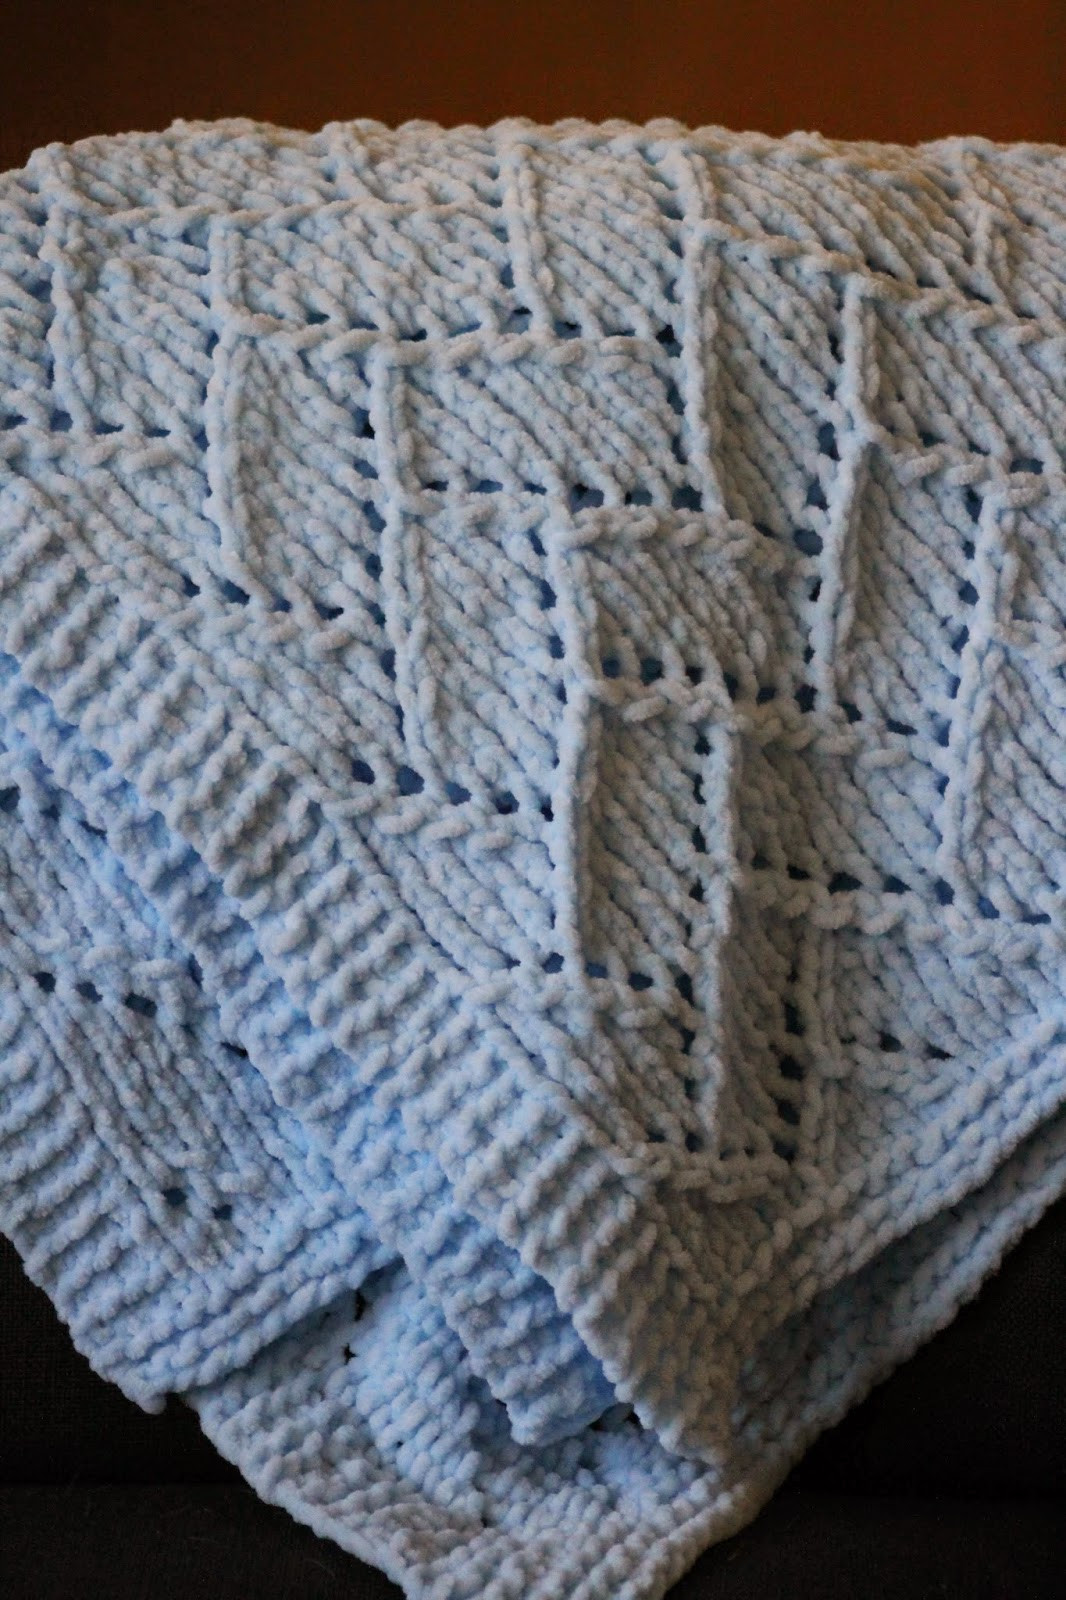 Baby Blanket Knitting Pattern Elegant Balls to the Walls Knits Bricklayer S Lace Baby Blanket Of Lovely 48 Photos Baby Blanket Knitting Pattern